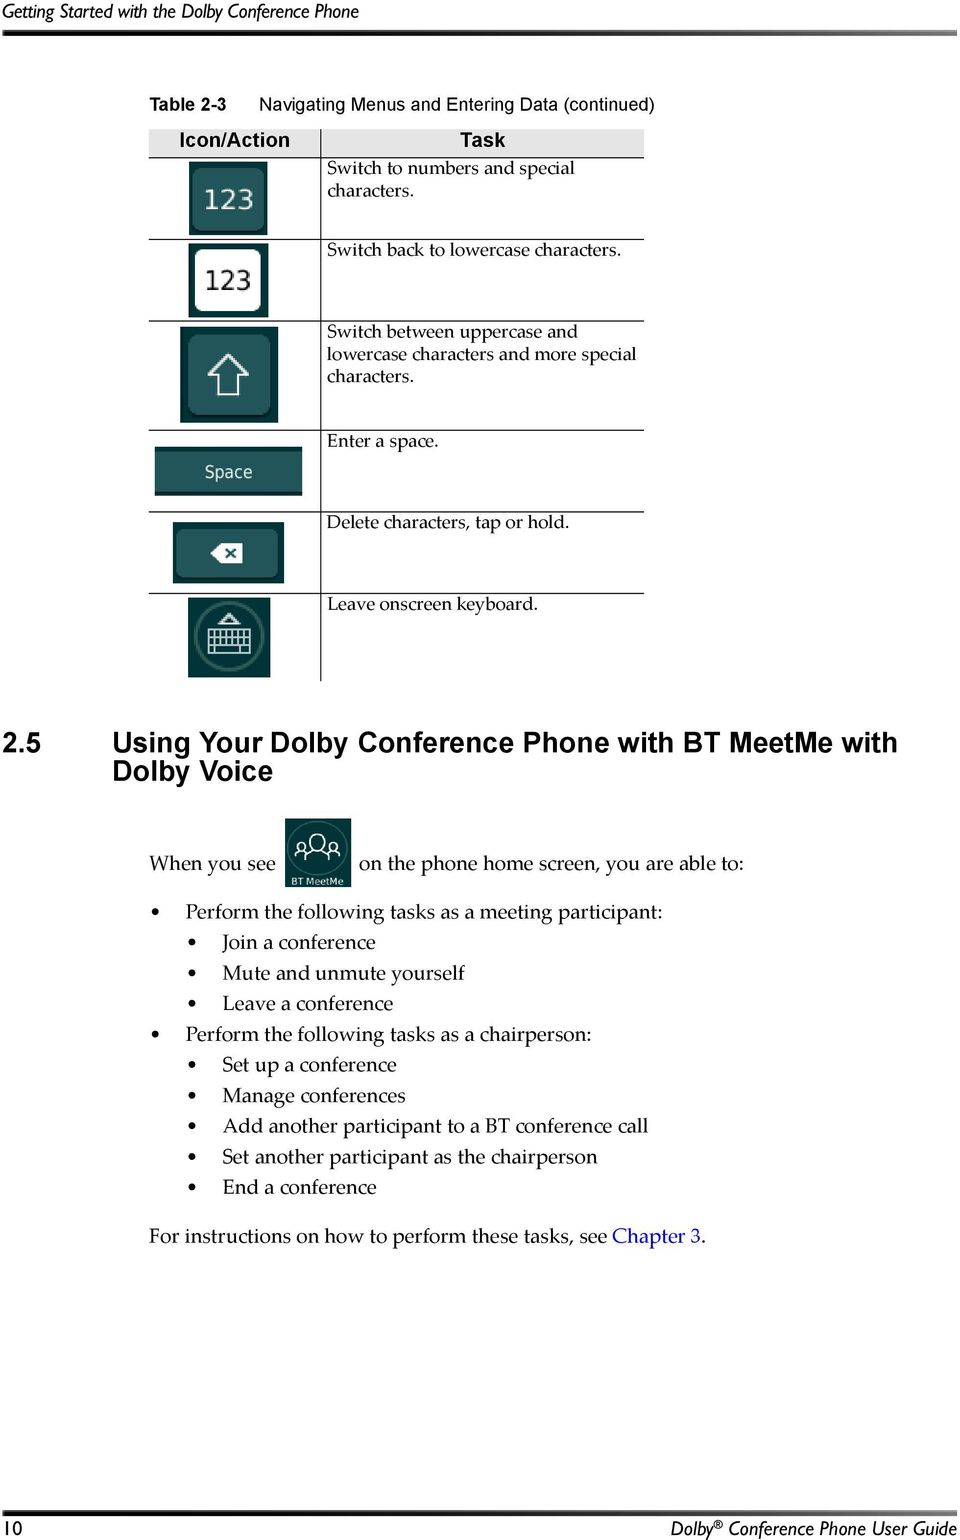 5 Using Your Dolby Conference Phone with BT MeetMe with Dolby Voice When you see on the phone home screen, you are able to: Perform the following tasks as a meeting participant: Join a conference